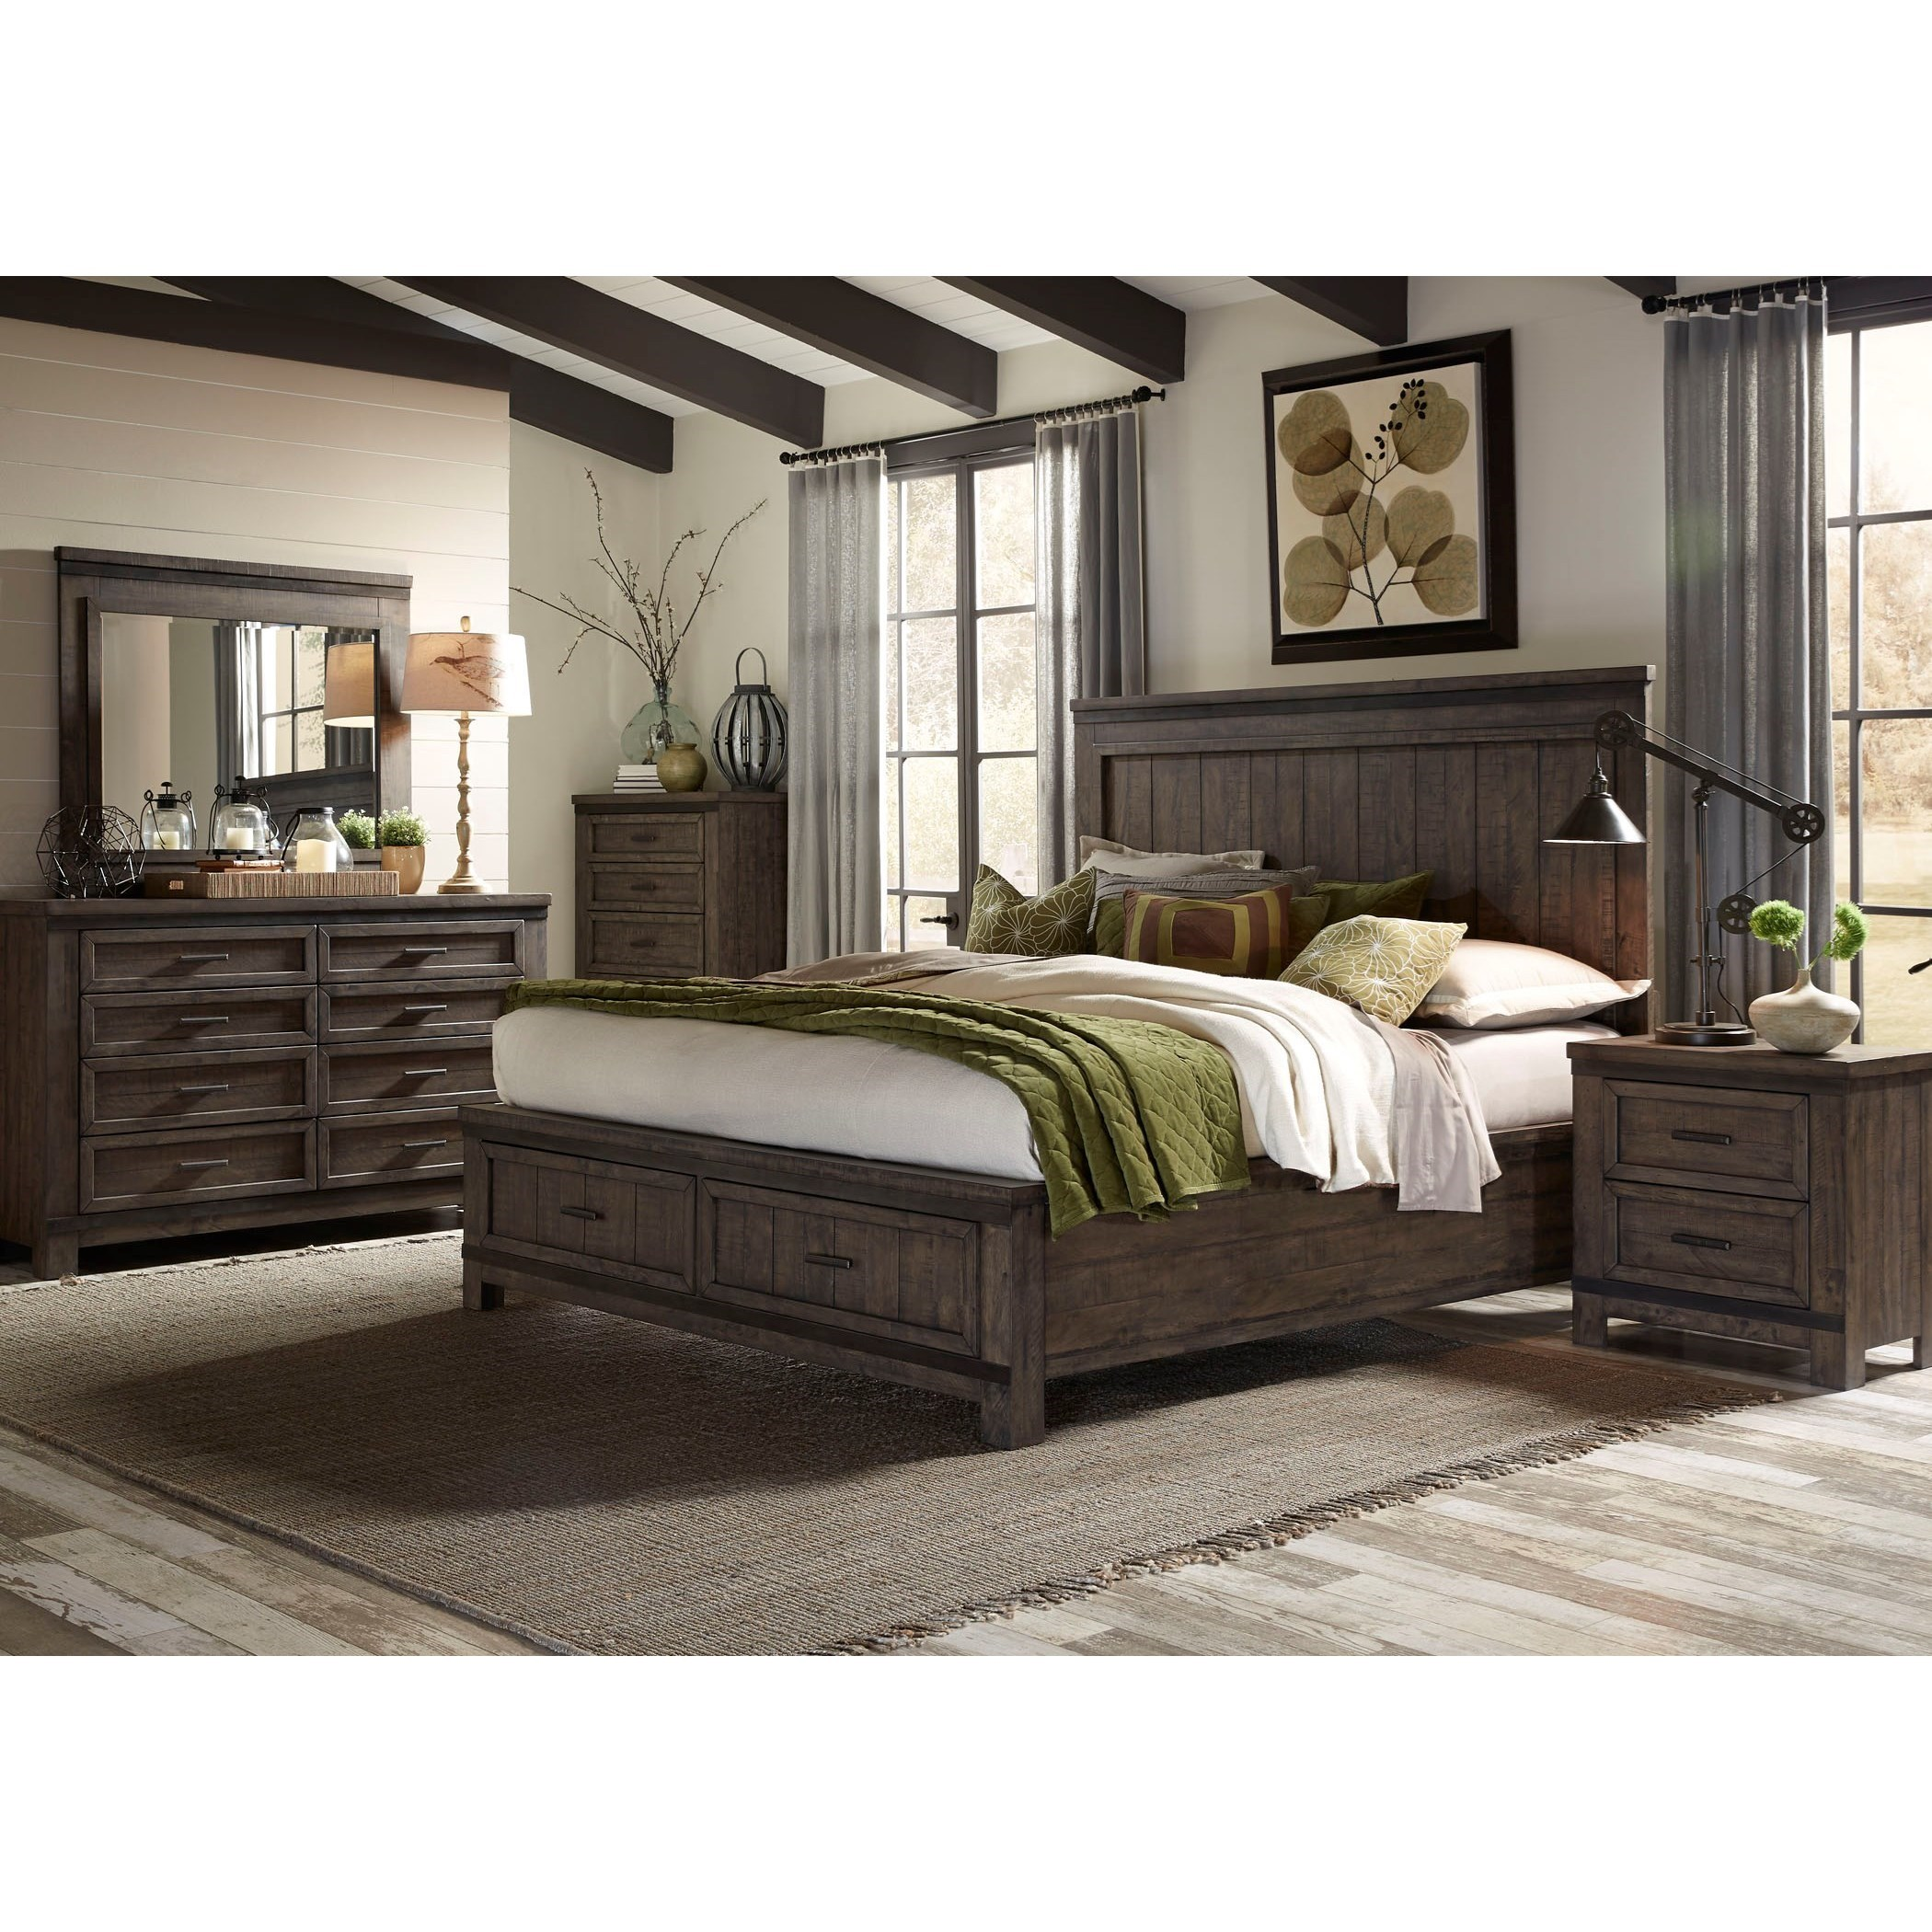 Thornwood Hills Queen Bedroom Group by Liberty Furniture at Rooms for Less